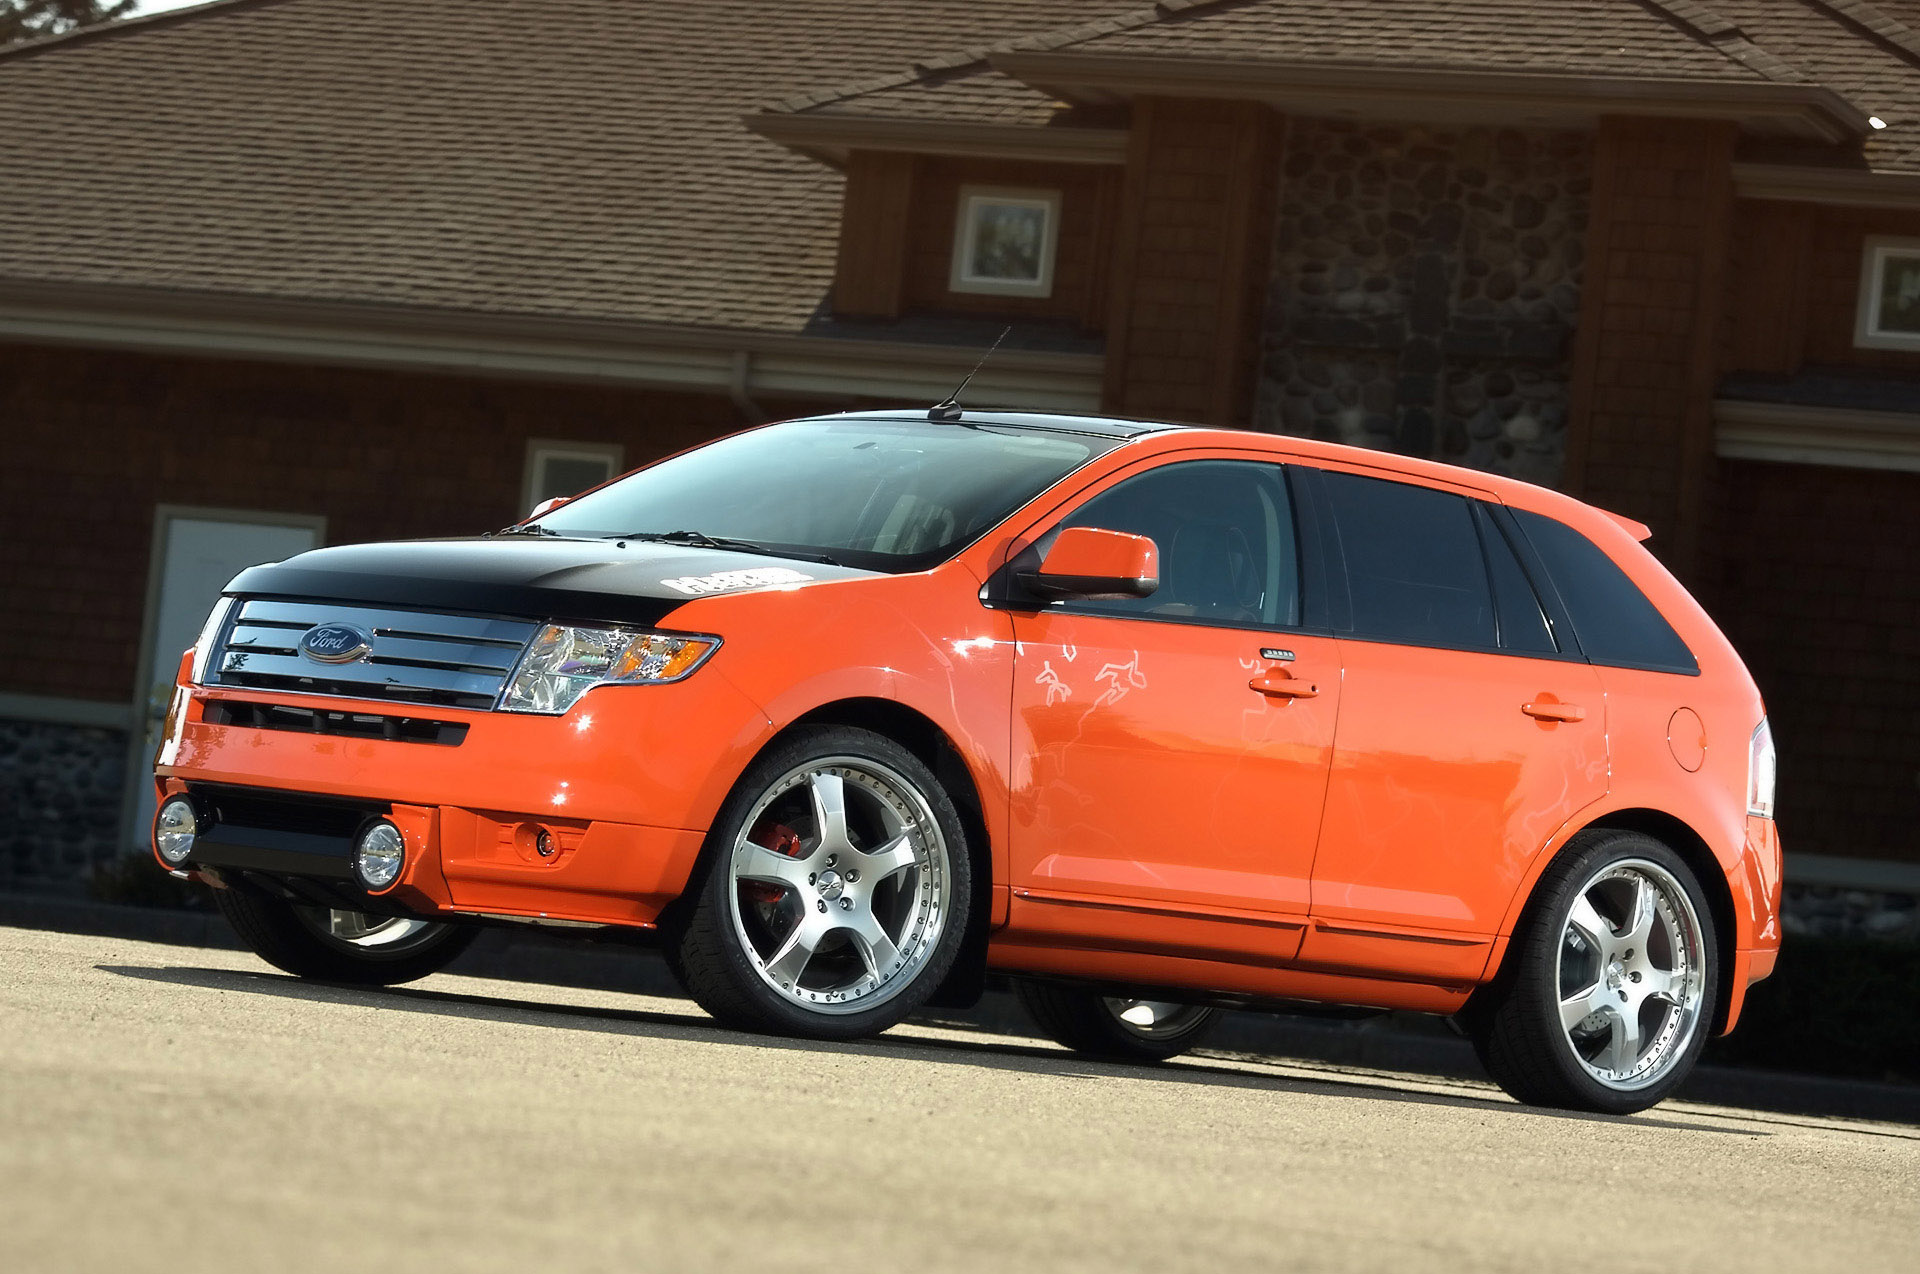 H r 2007 ford edge picture ford edge ford edge sport pinterest 2007 ford edge ford edge and ford